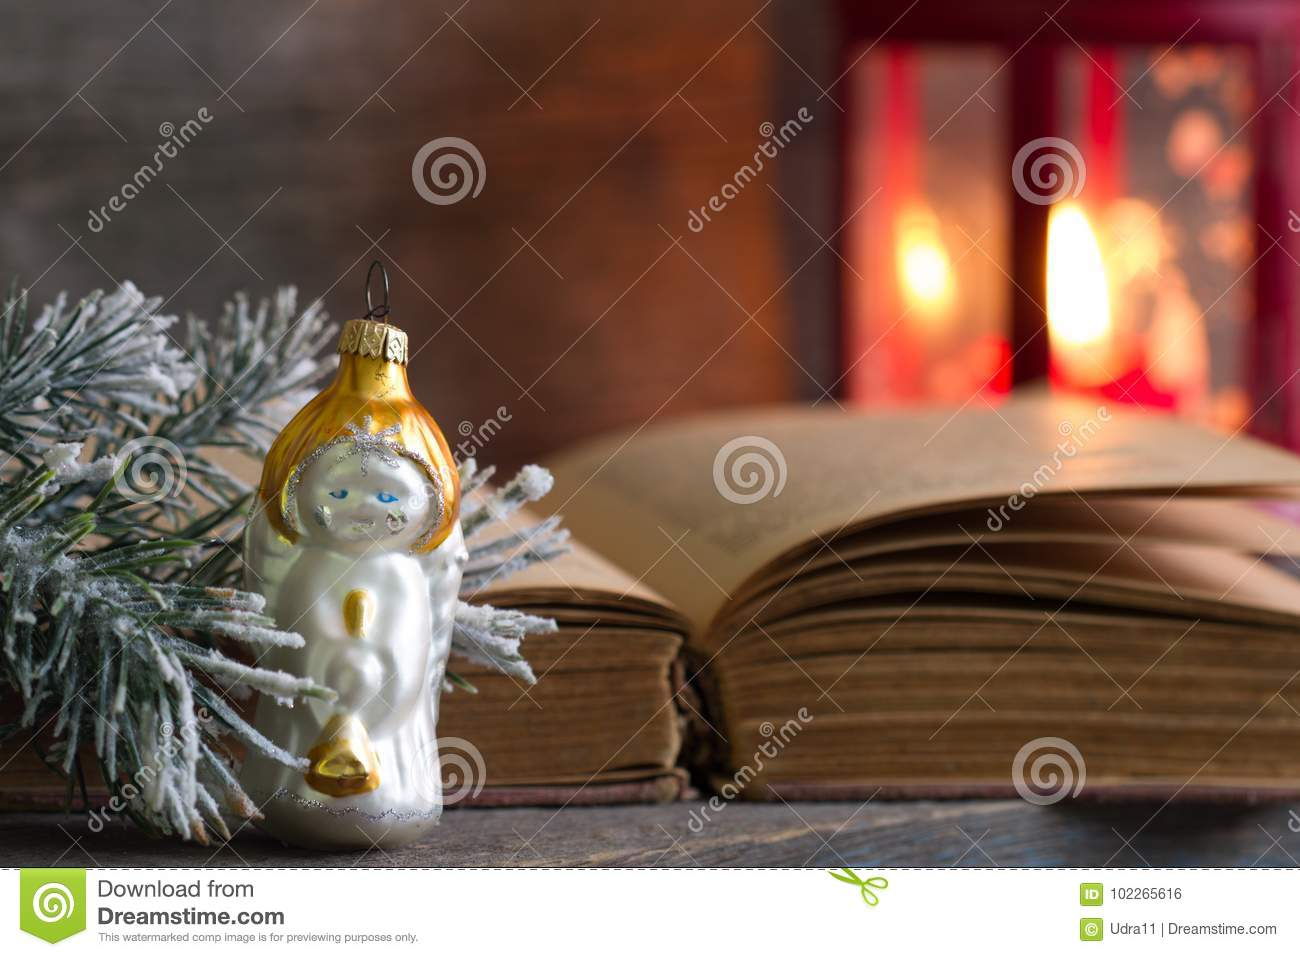 Christmas angel bible and lantern on wooden background